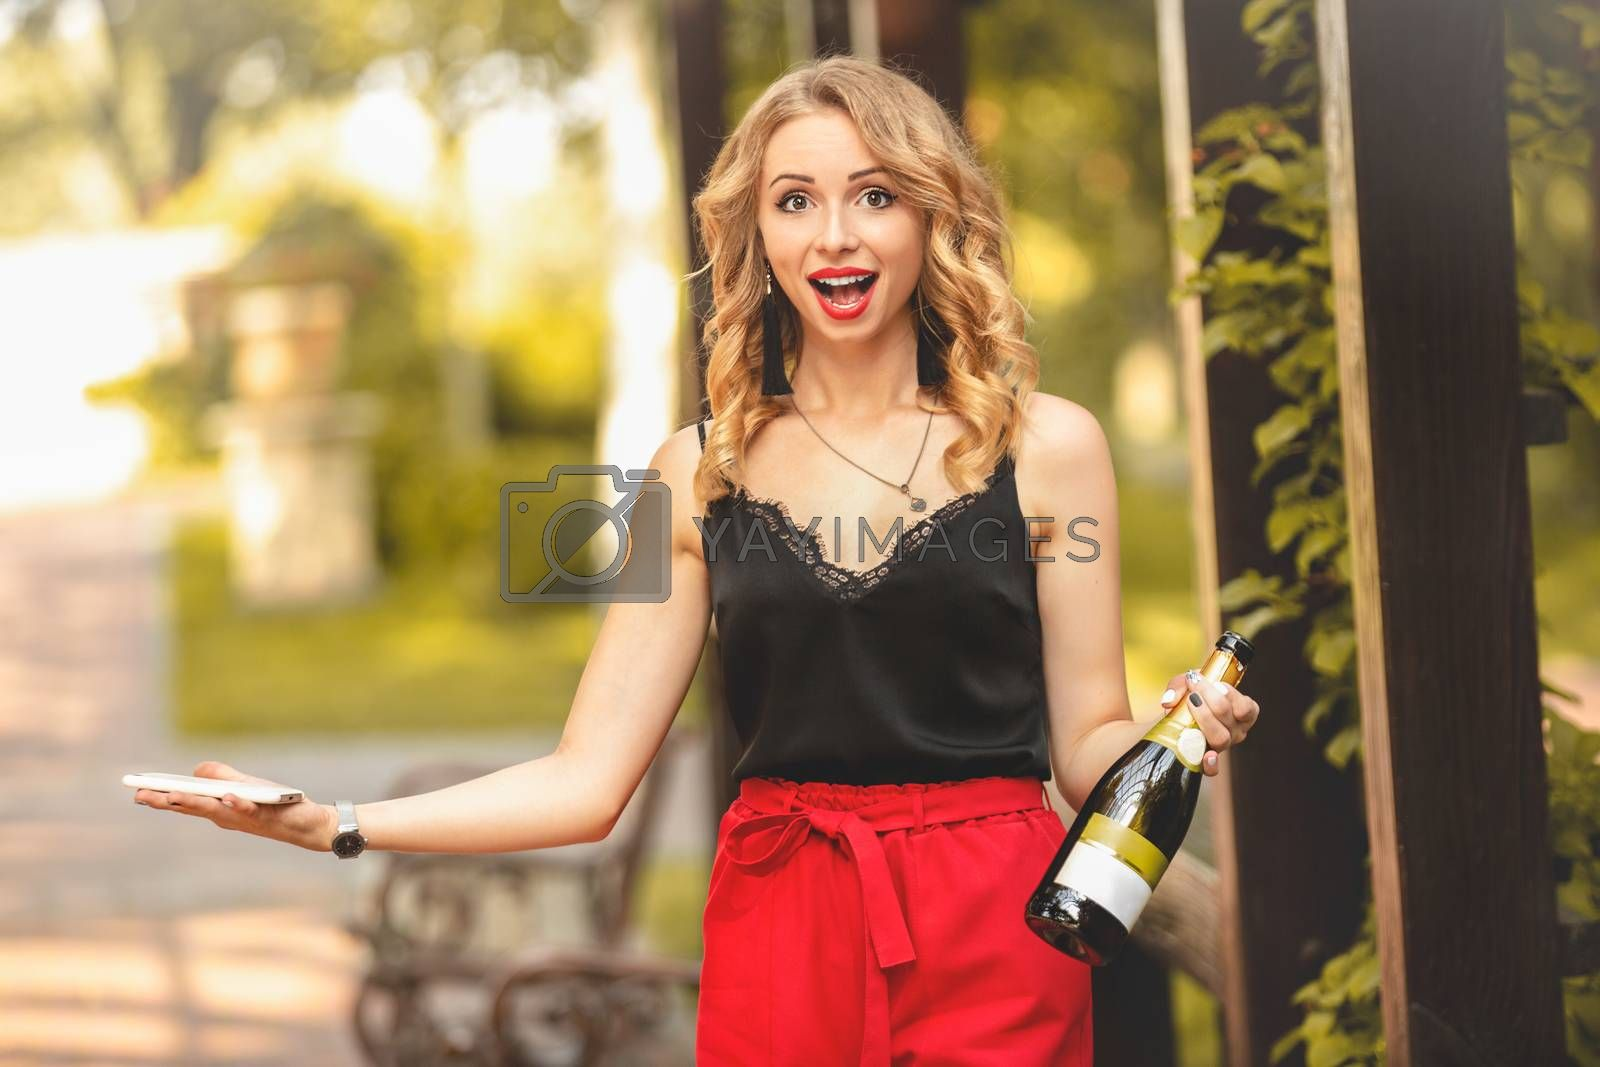 Happy young attractive white woman laughing joyfully, talking on the phone, holding a bottle of champagne and calling for a party. emotions lifestyle leisure relaxation positive communication.